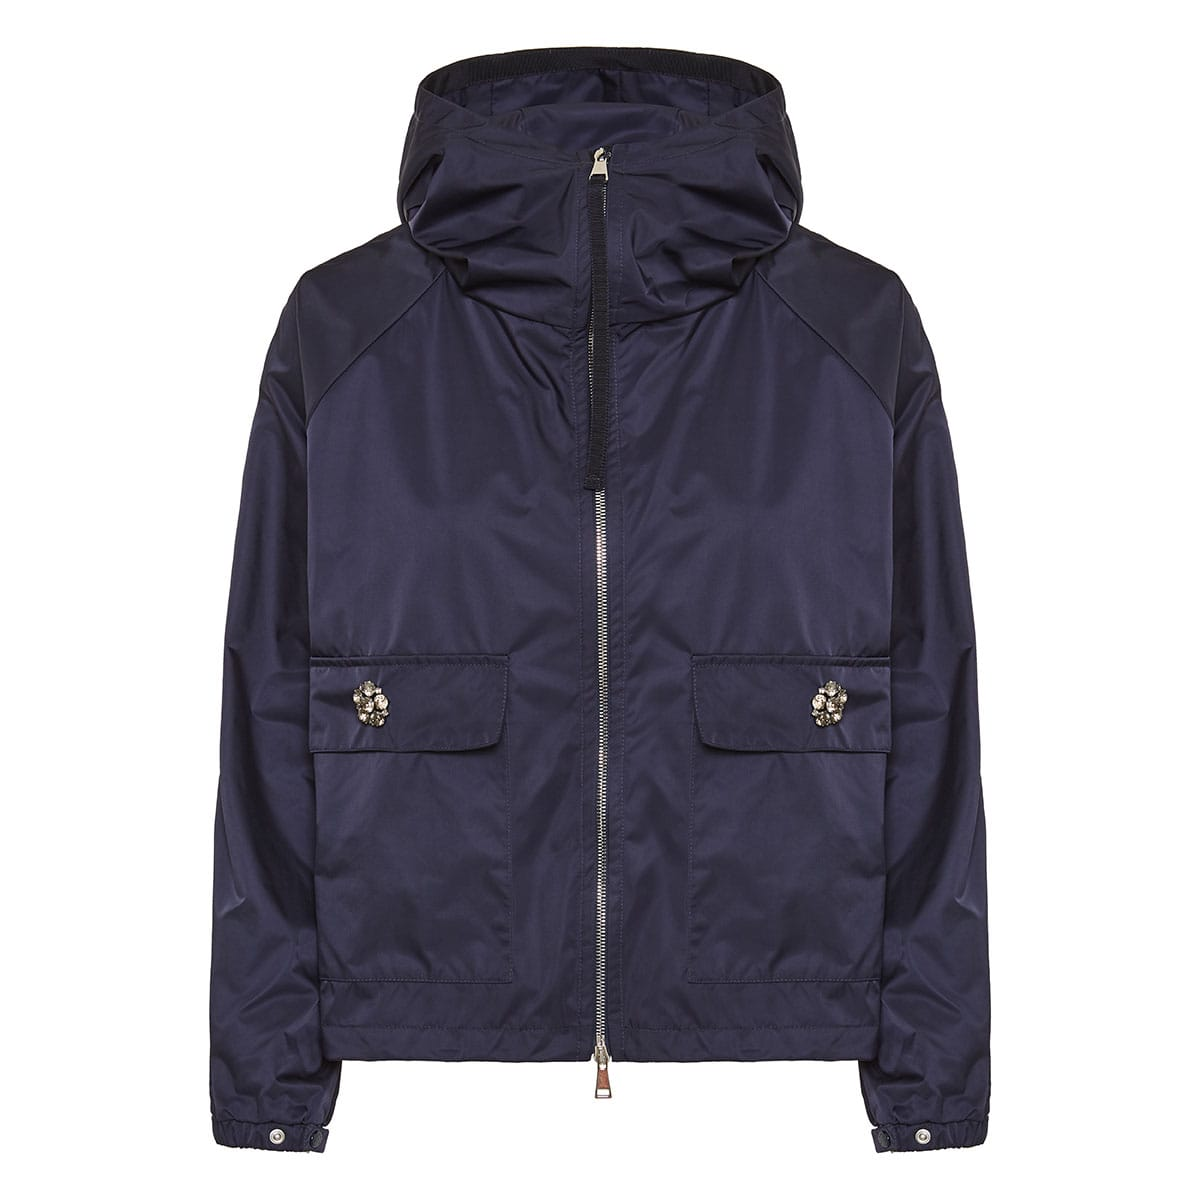 Nylon jacket with jeweled buttons